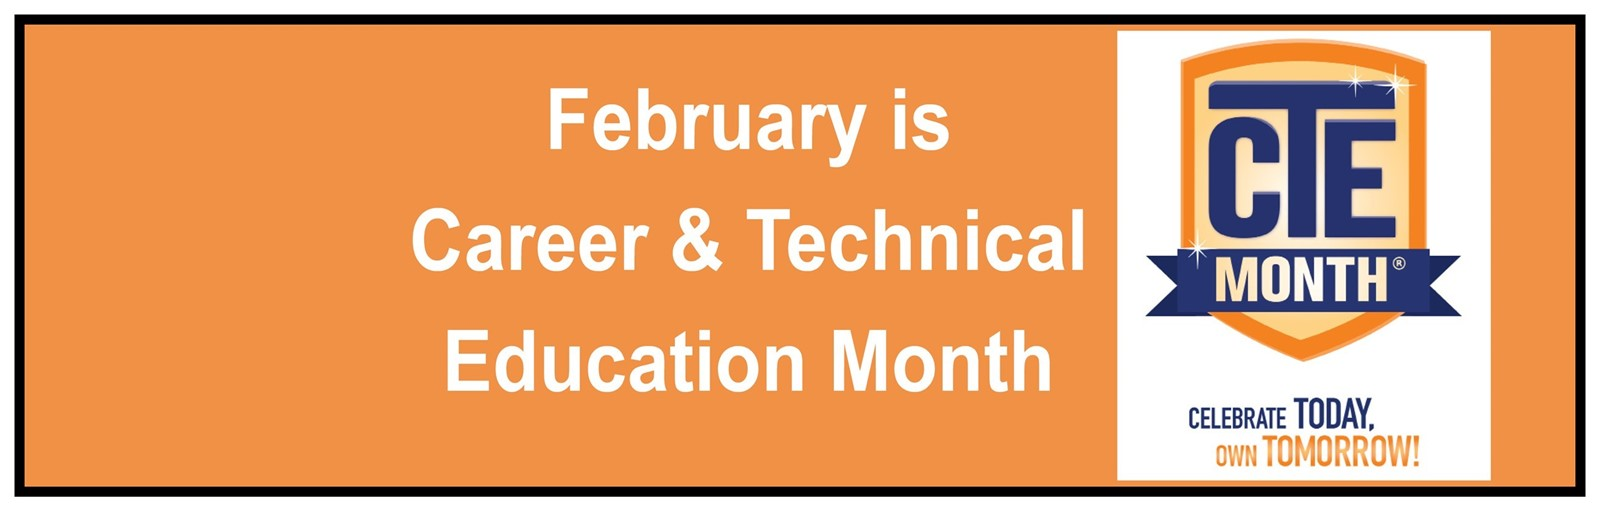 Career & Technical Education Month